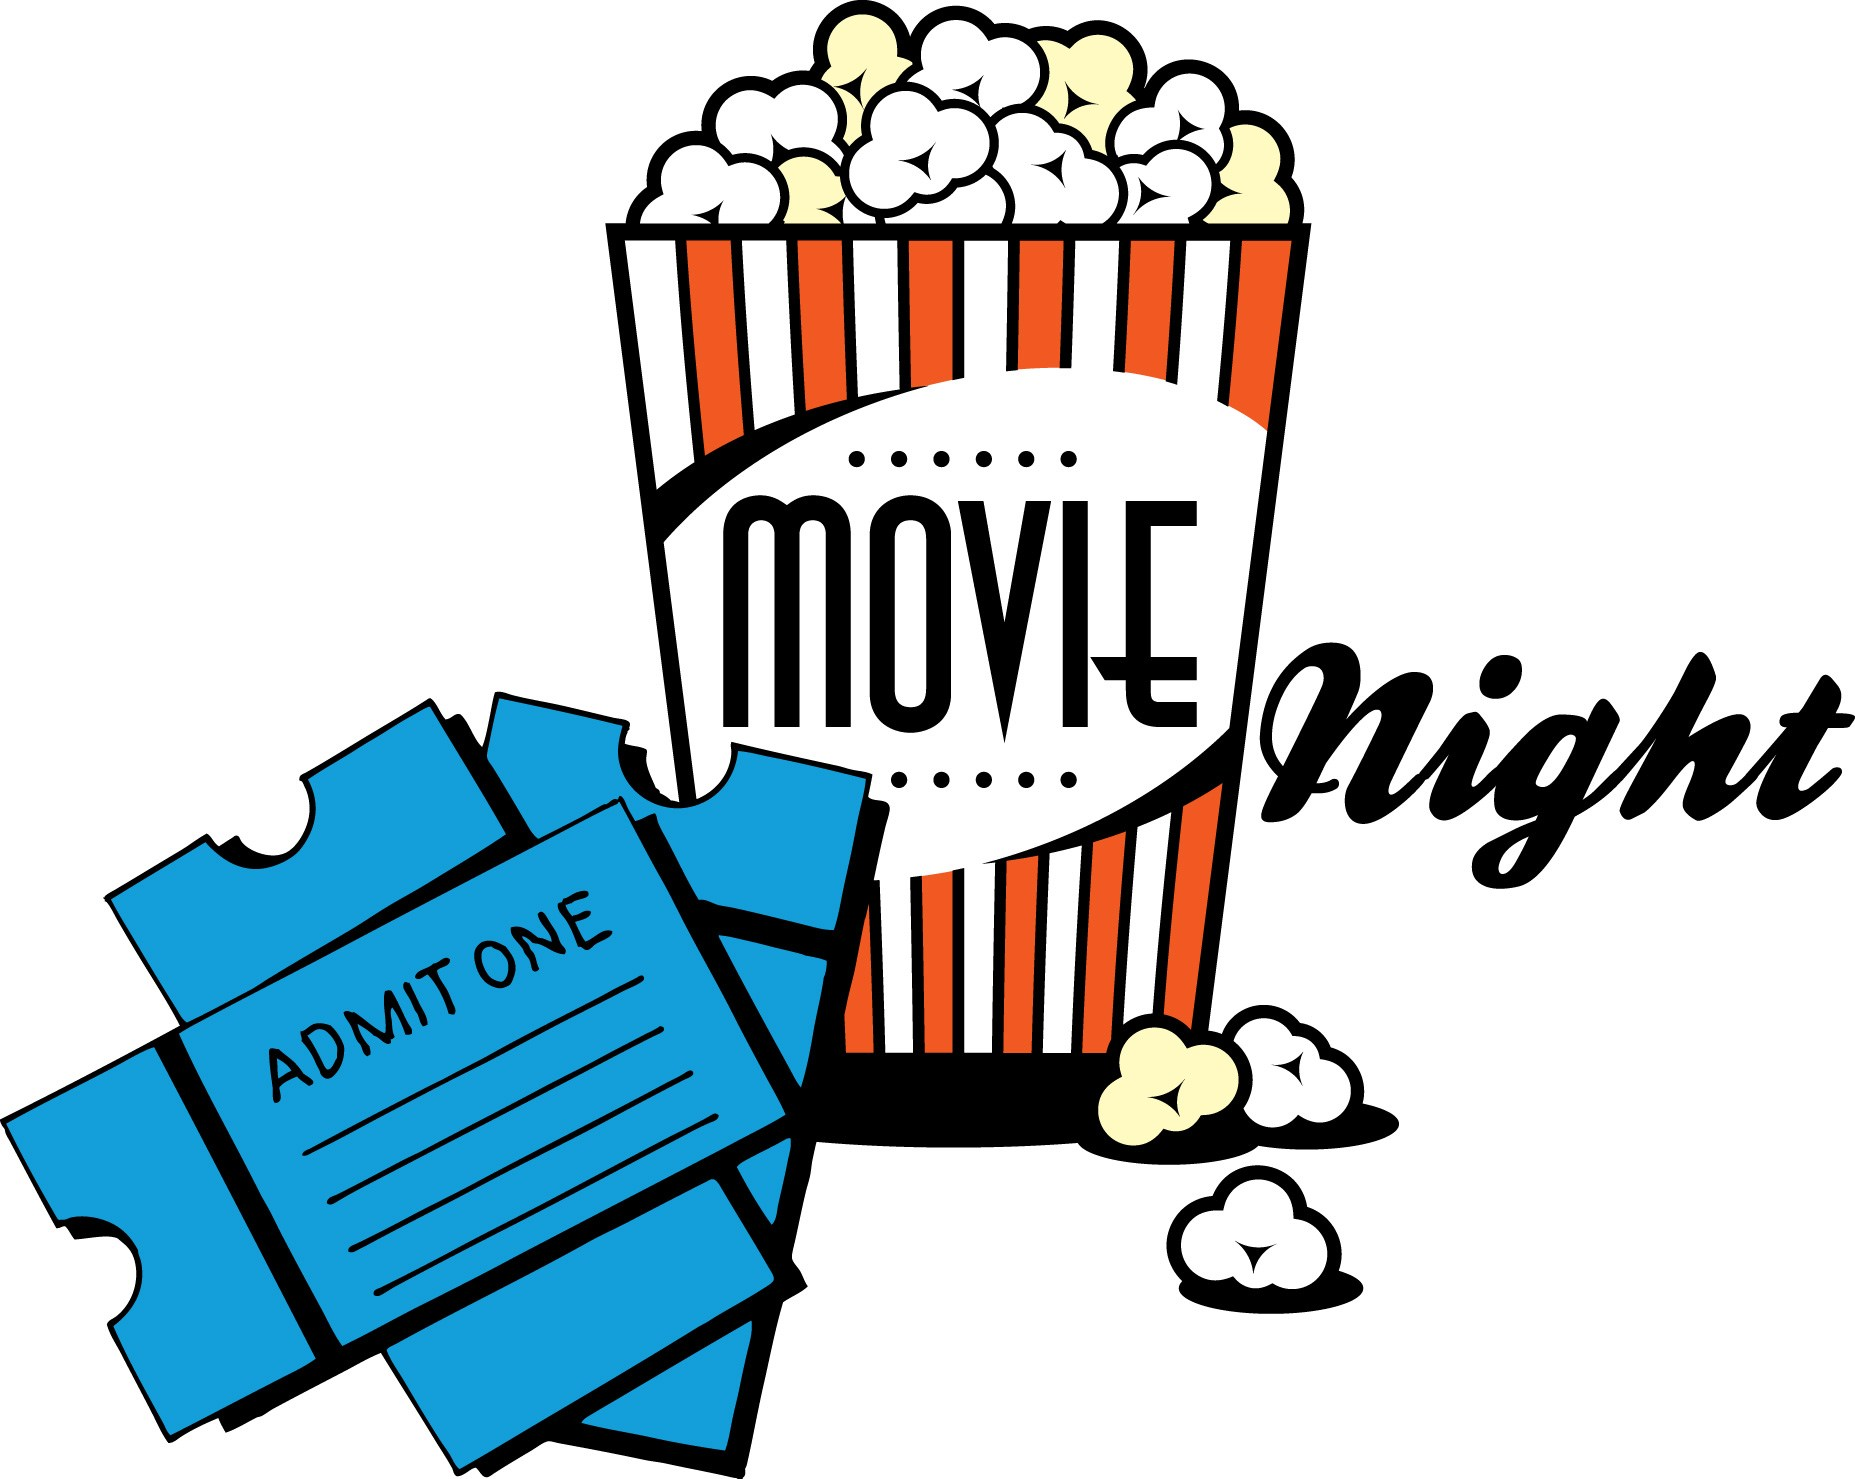 Dinner and a movie clipart 4 » Clipart Portal.